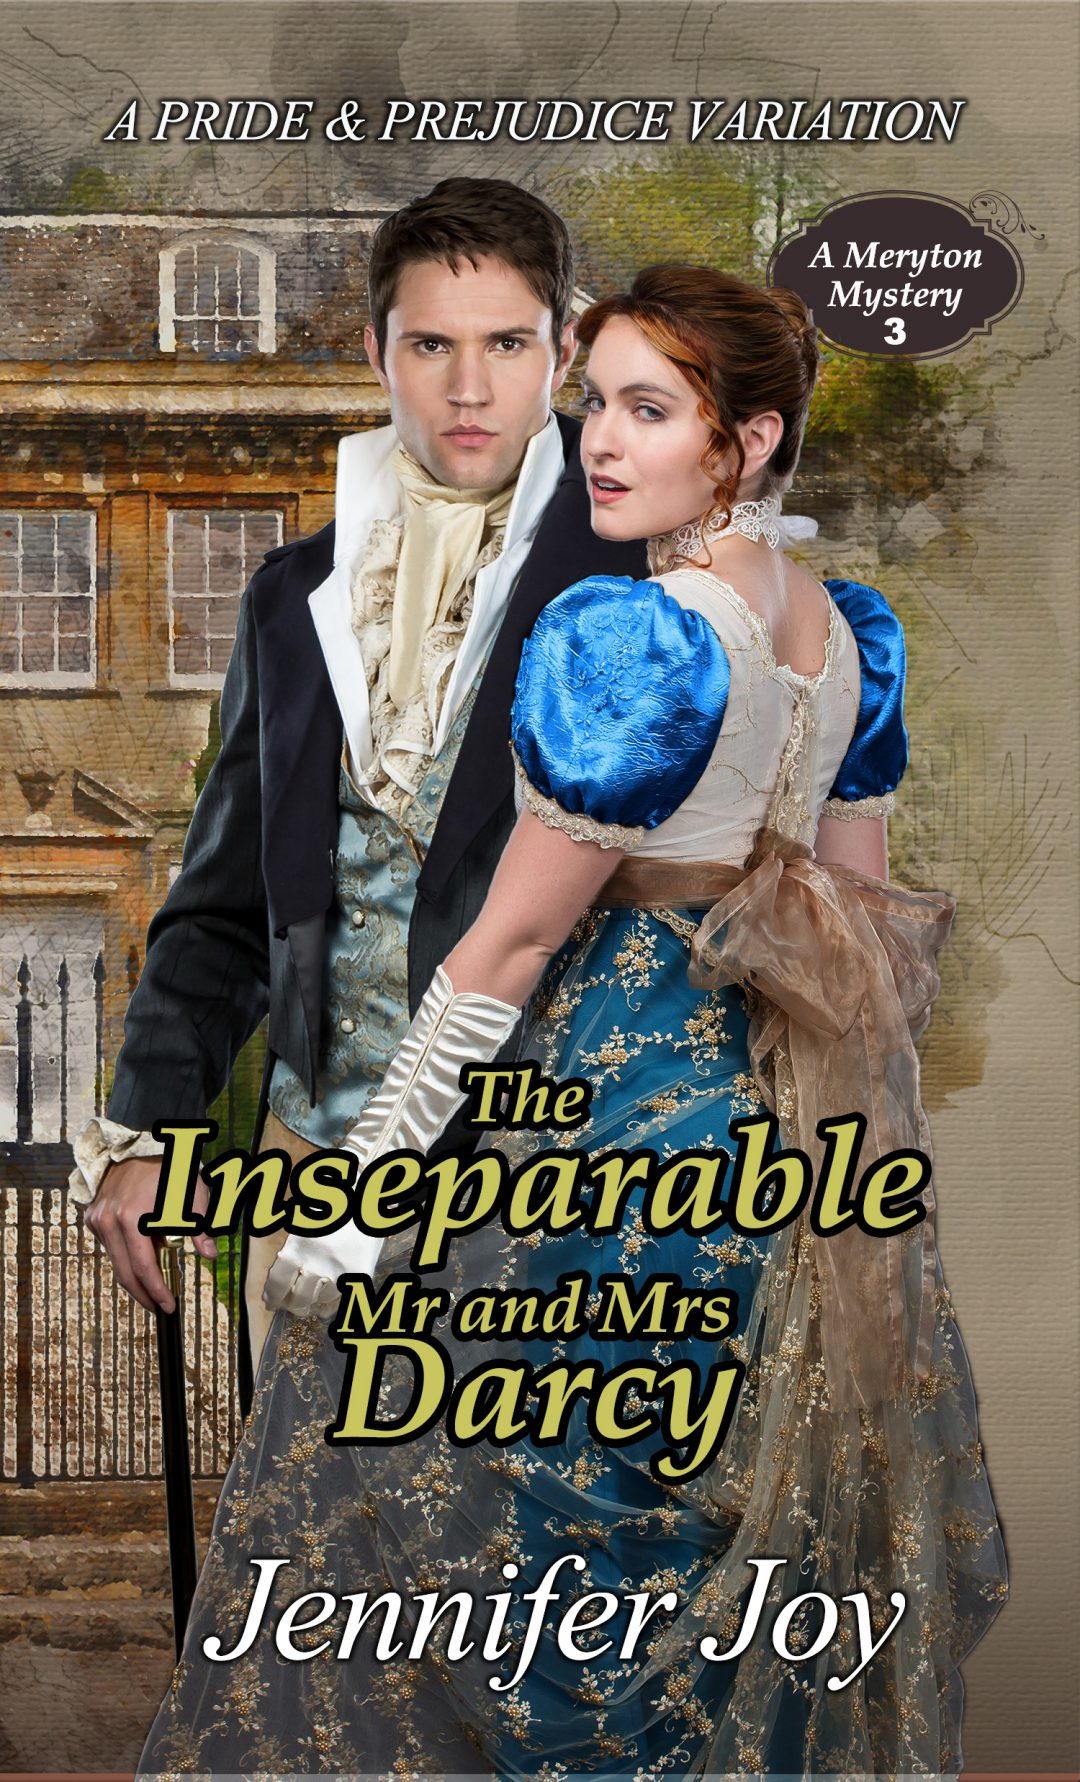 The Inseparable Mr. and Mrs. Darcy